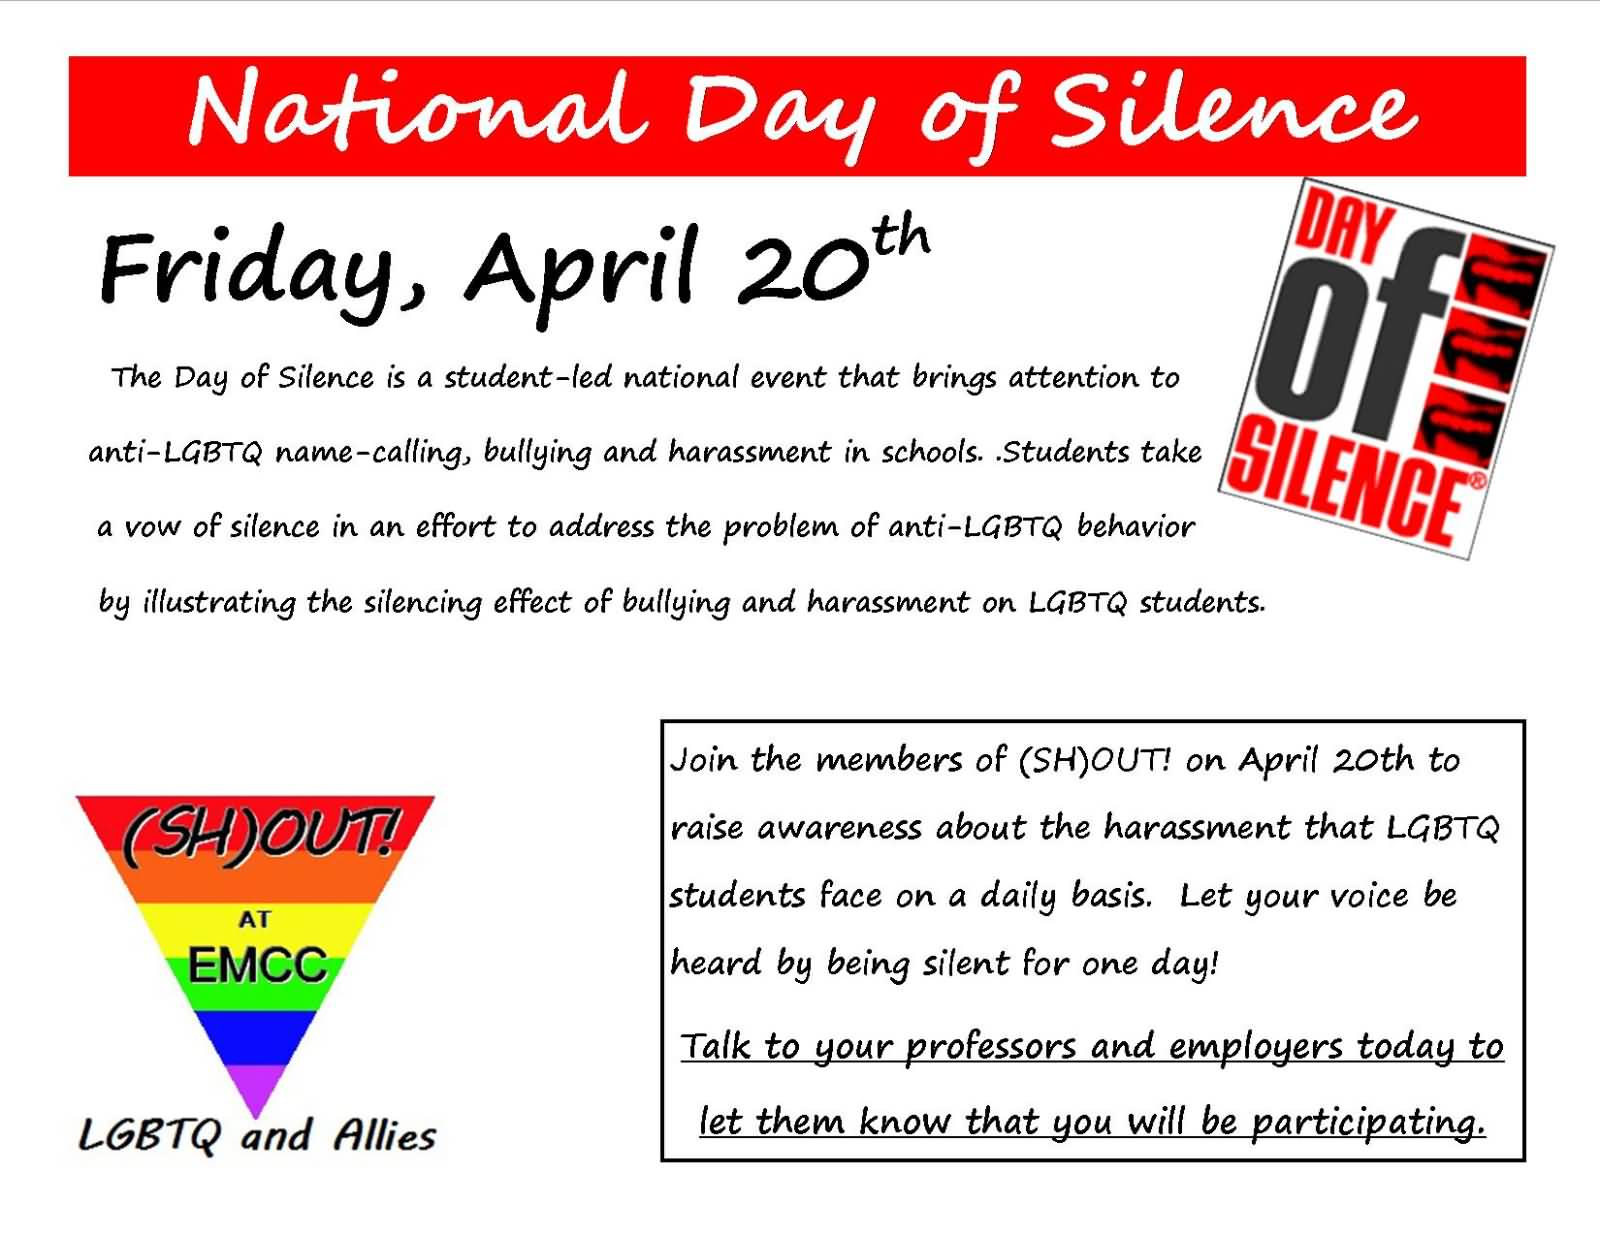 National Day of Silence April 20th